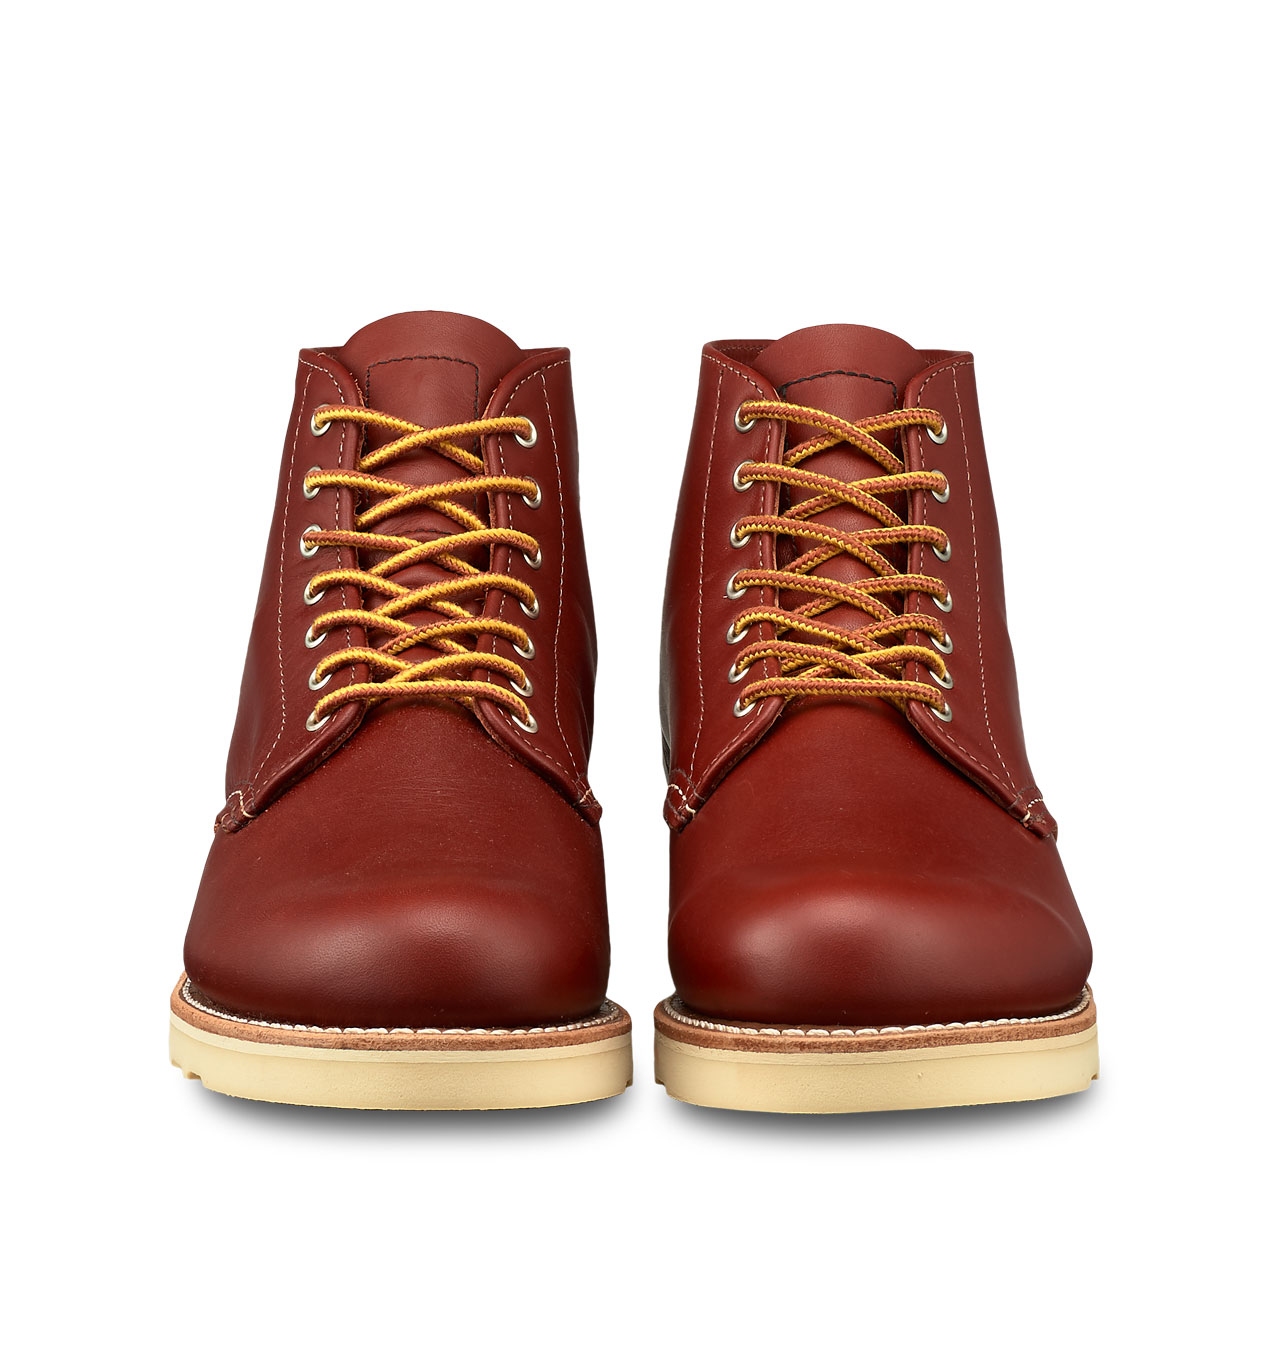 Red Wing Shoes Woman 3452 6-Inch Round